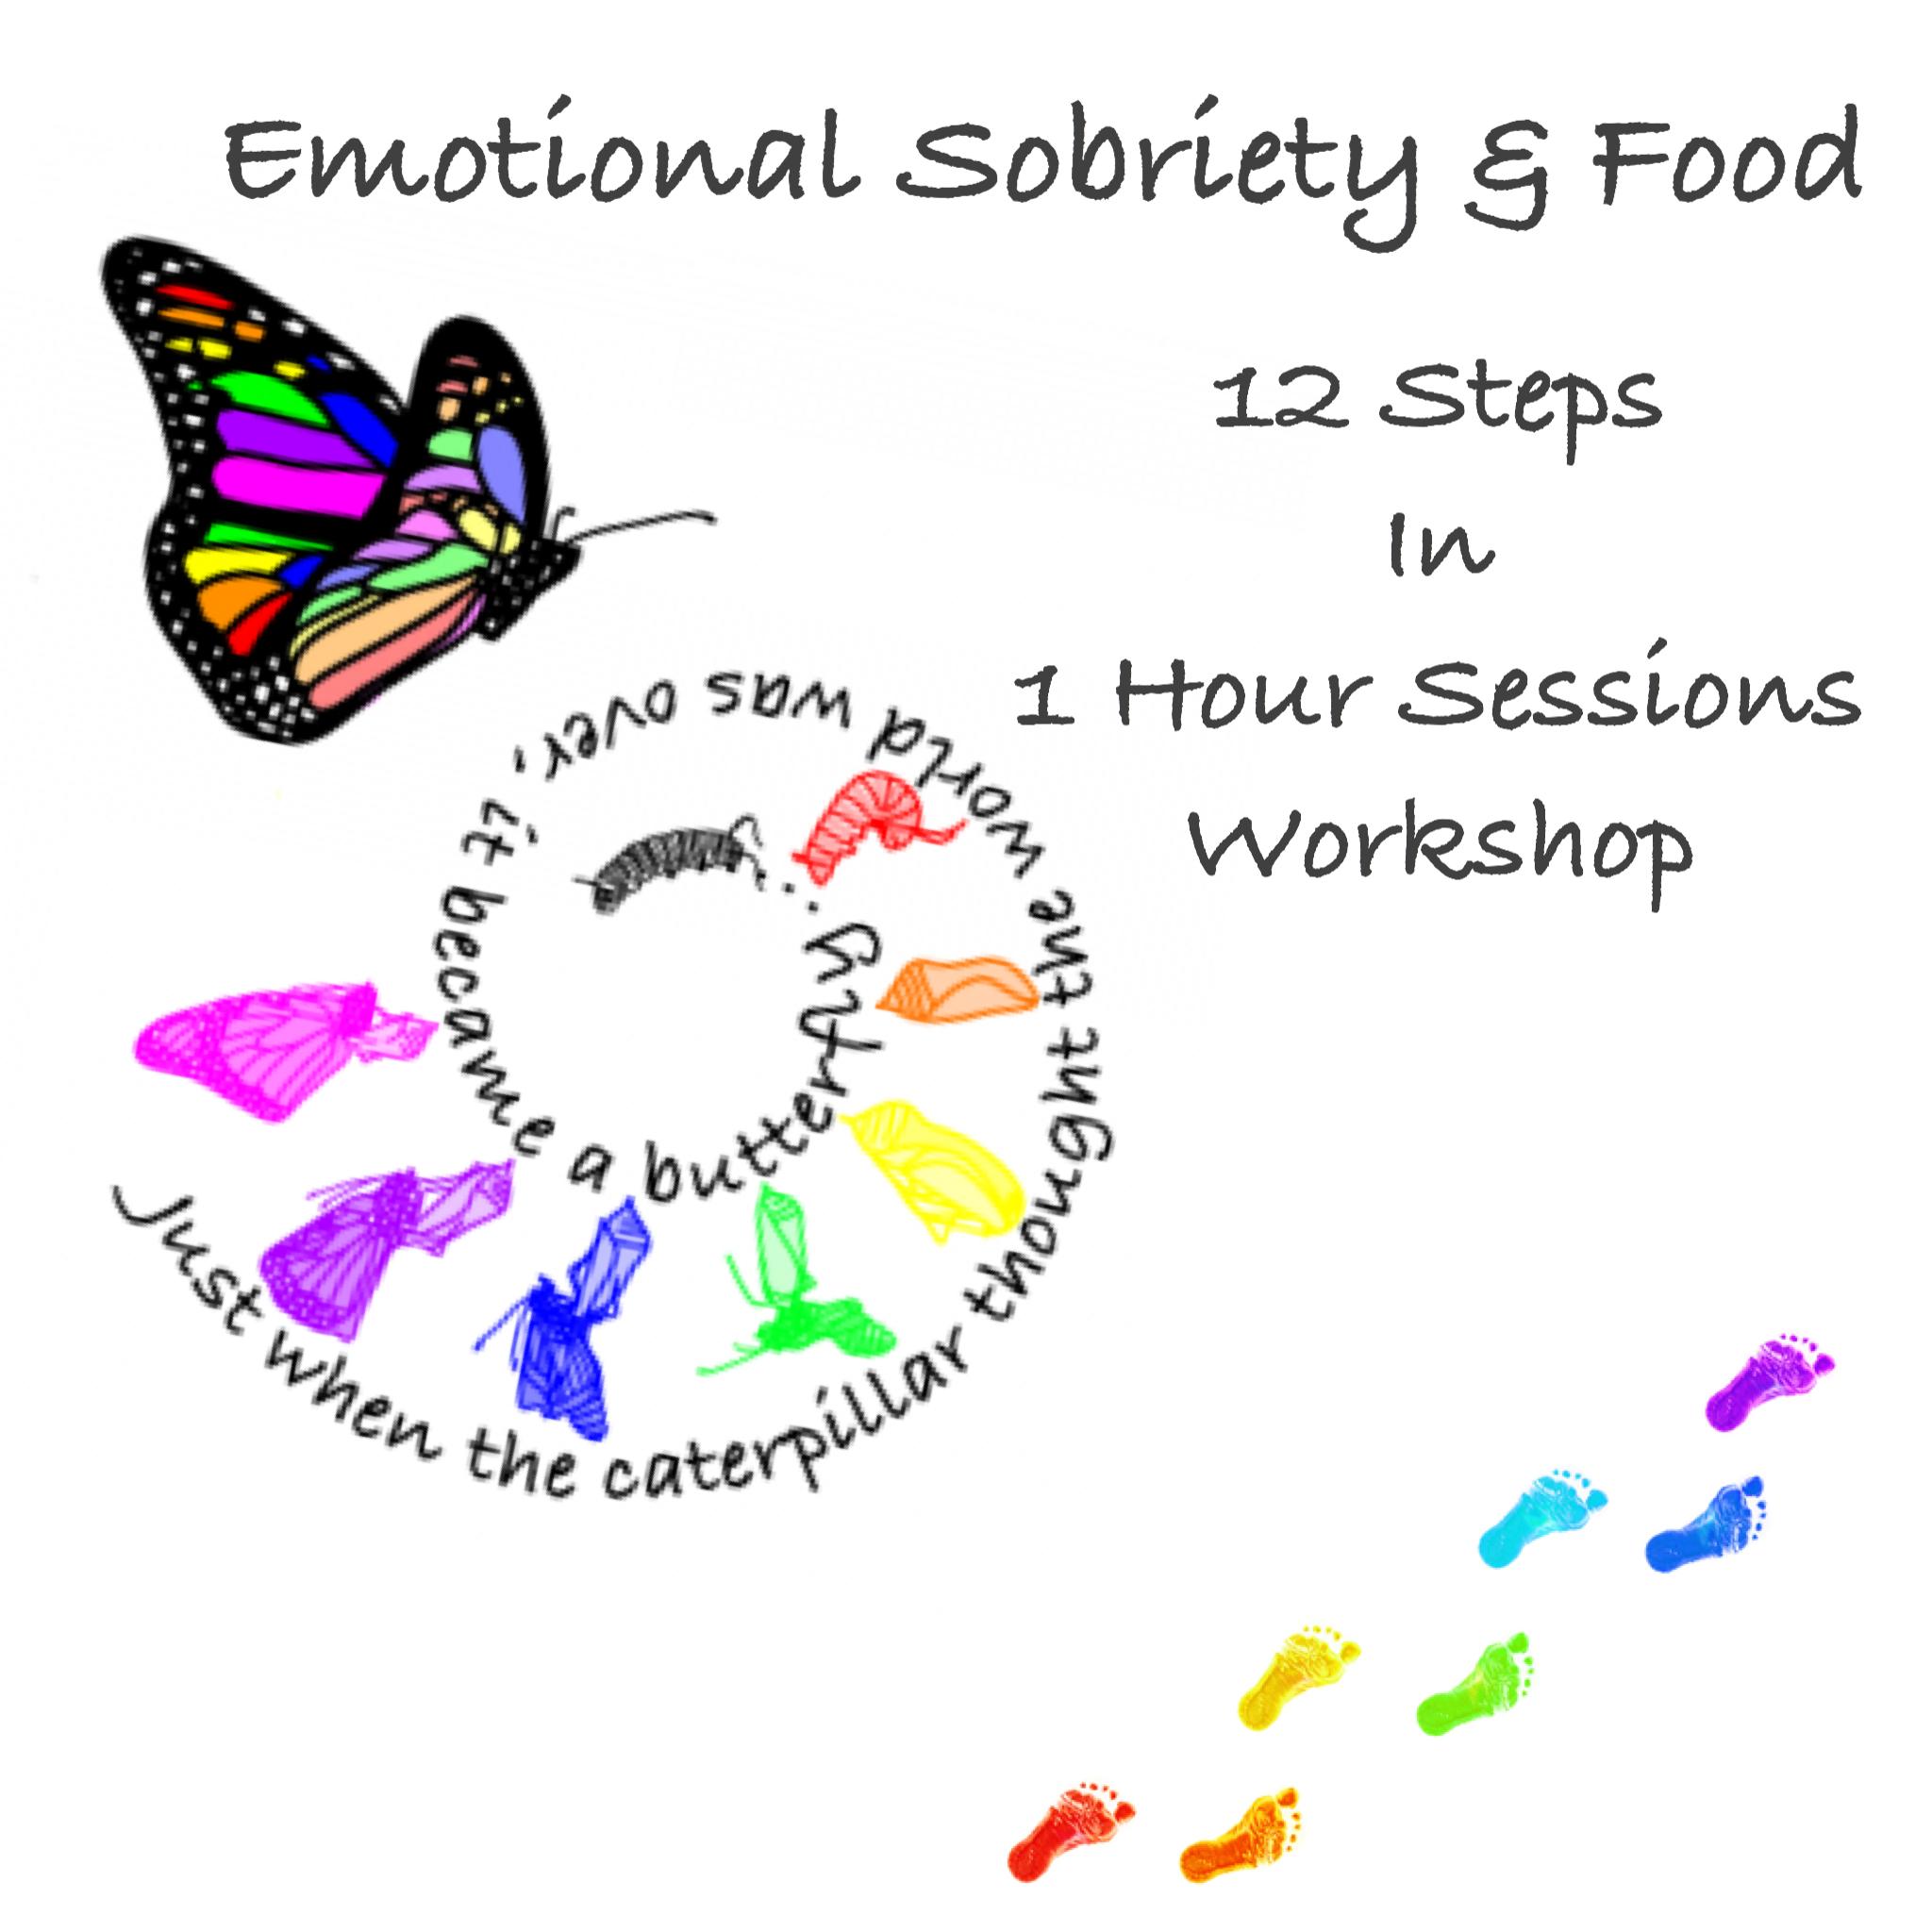 12 Steps In 1 Hour Sessions Emotional Sobriety And Food